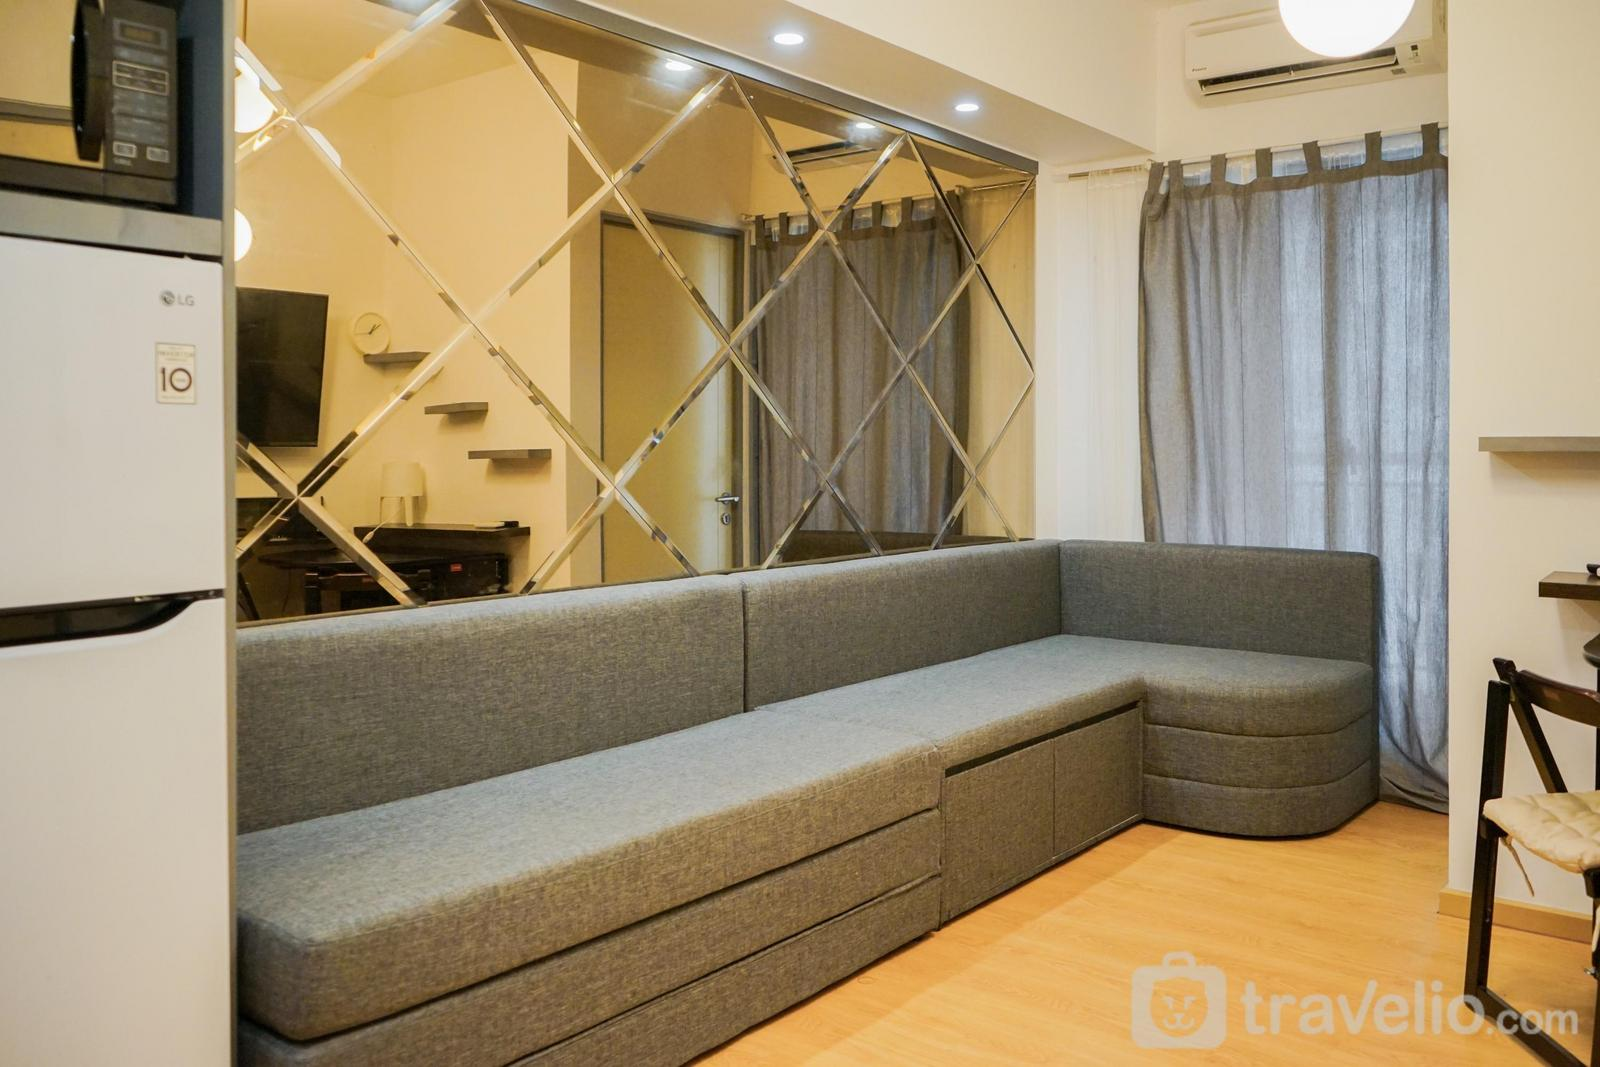 Apartemen M-Town Residence - Fully Furnished Apartment 2BR Serpong M-Town Residence By Travelio